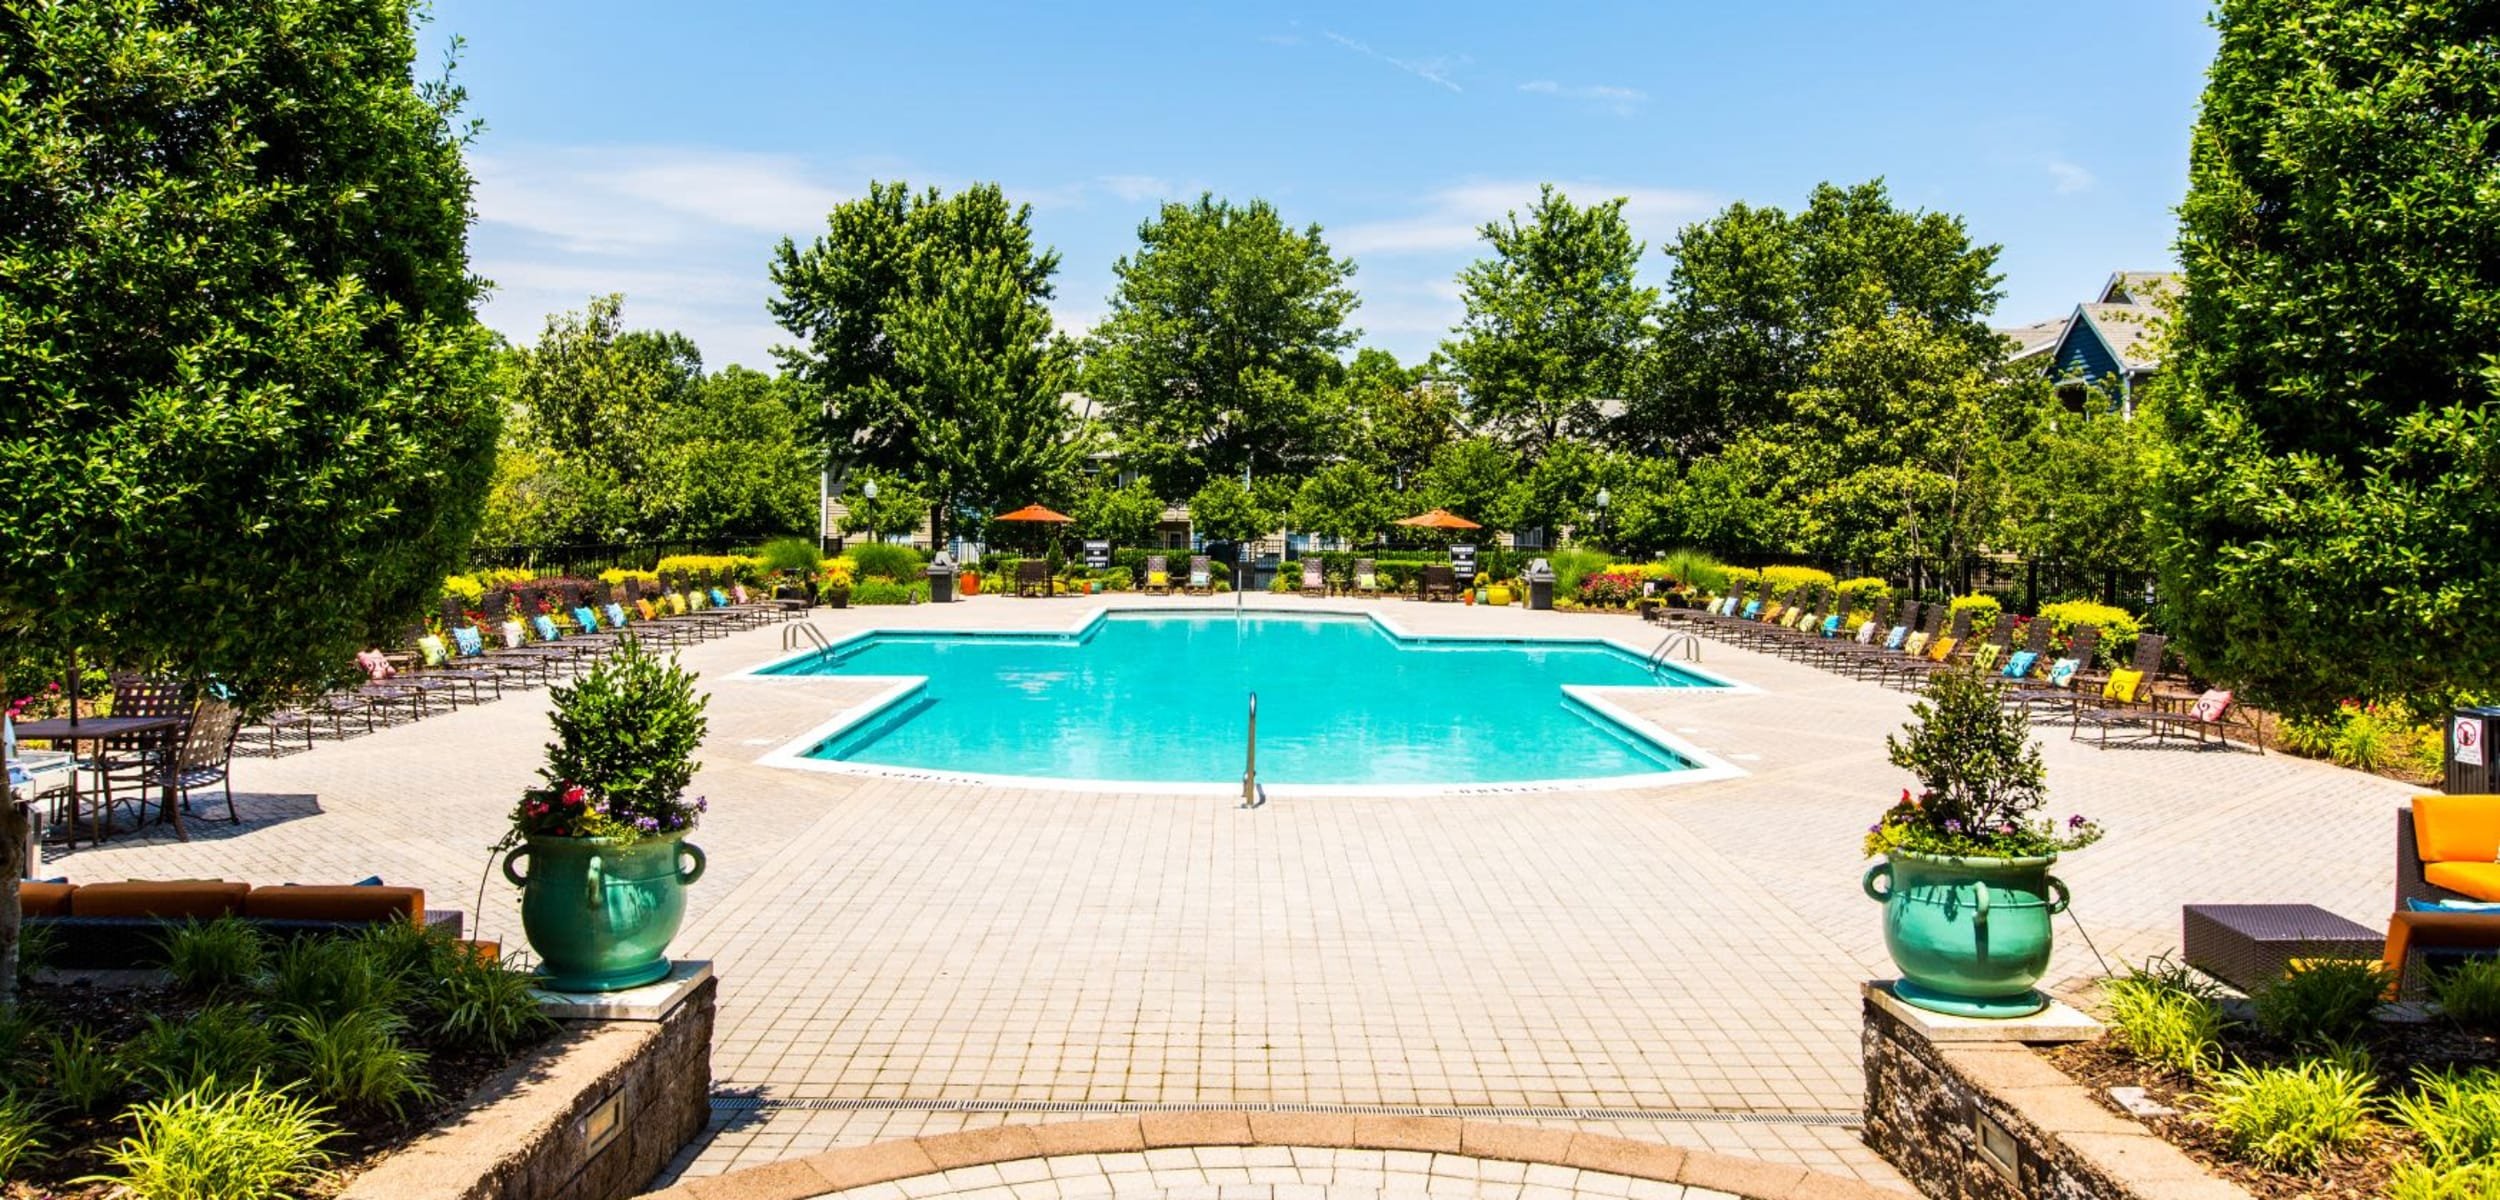 Swimming pool surrounded by trees at Marquis at Silverton in Cary North Carolina,